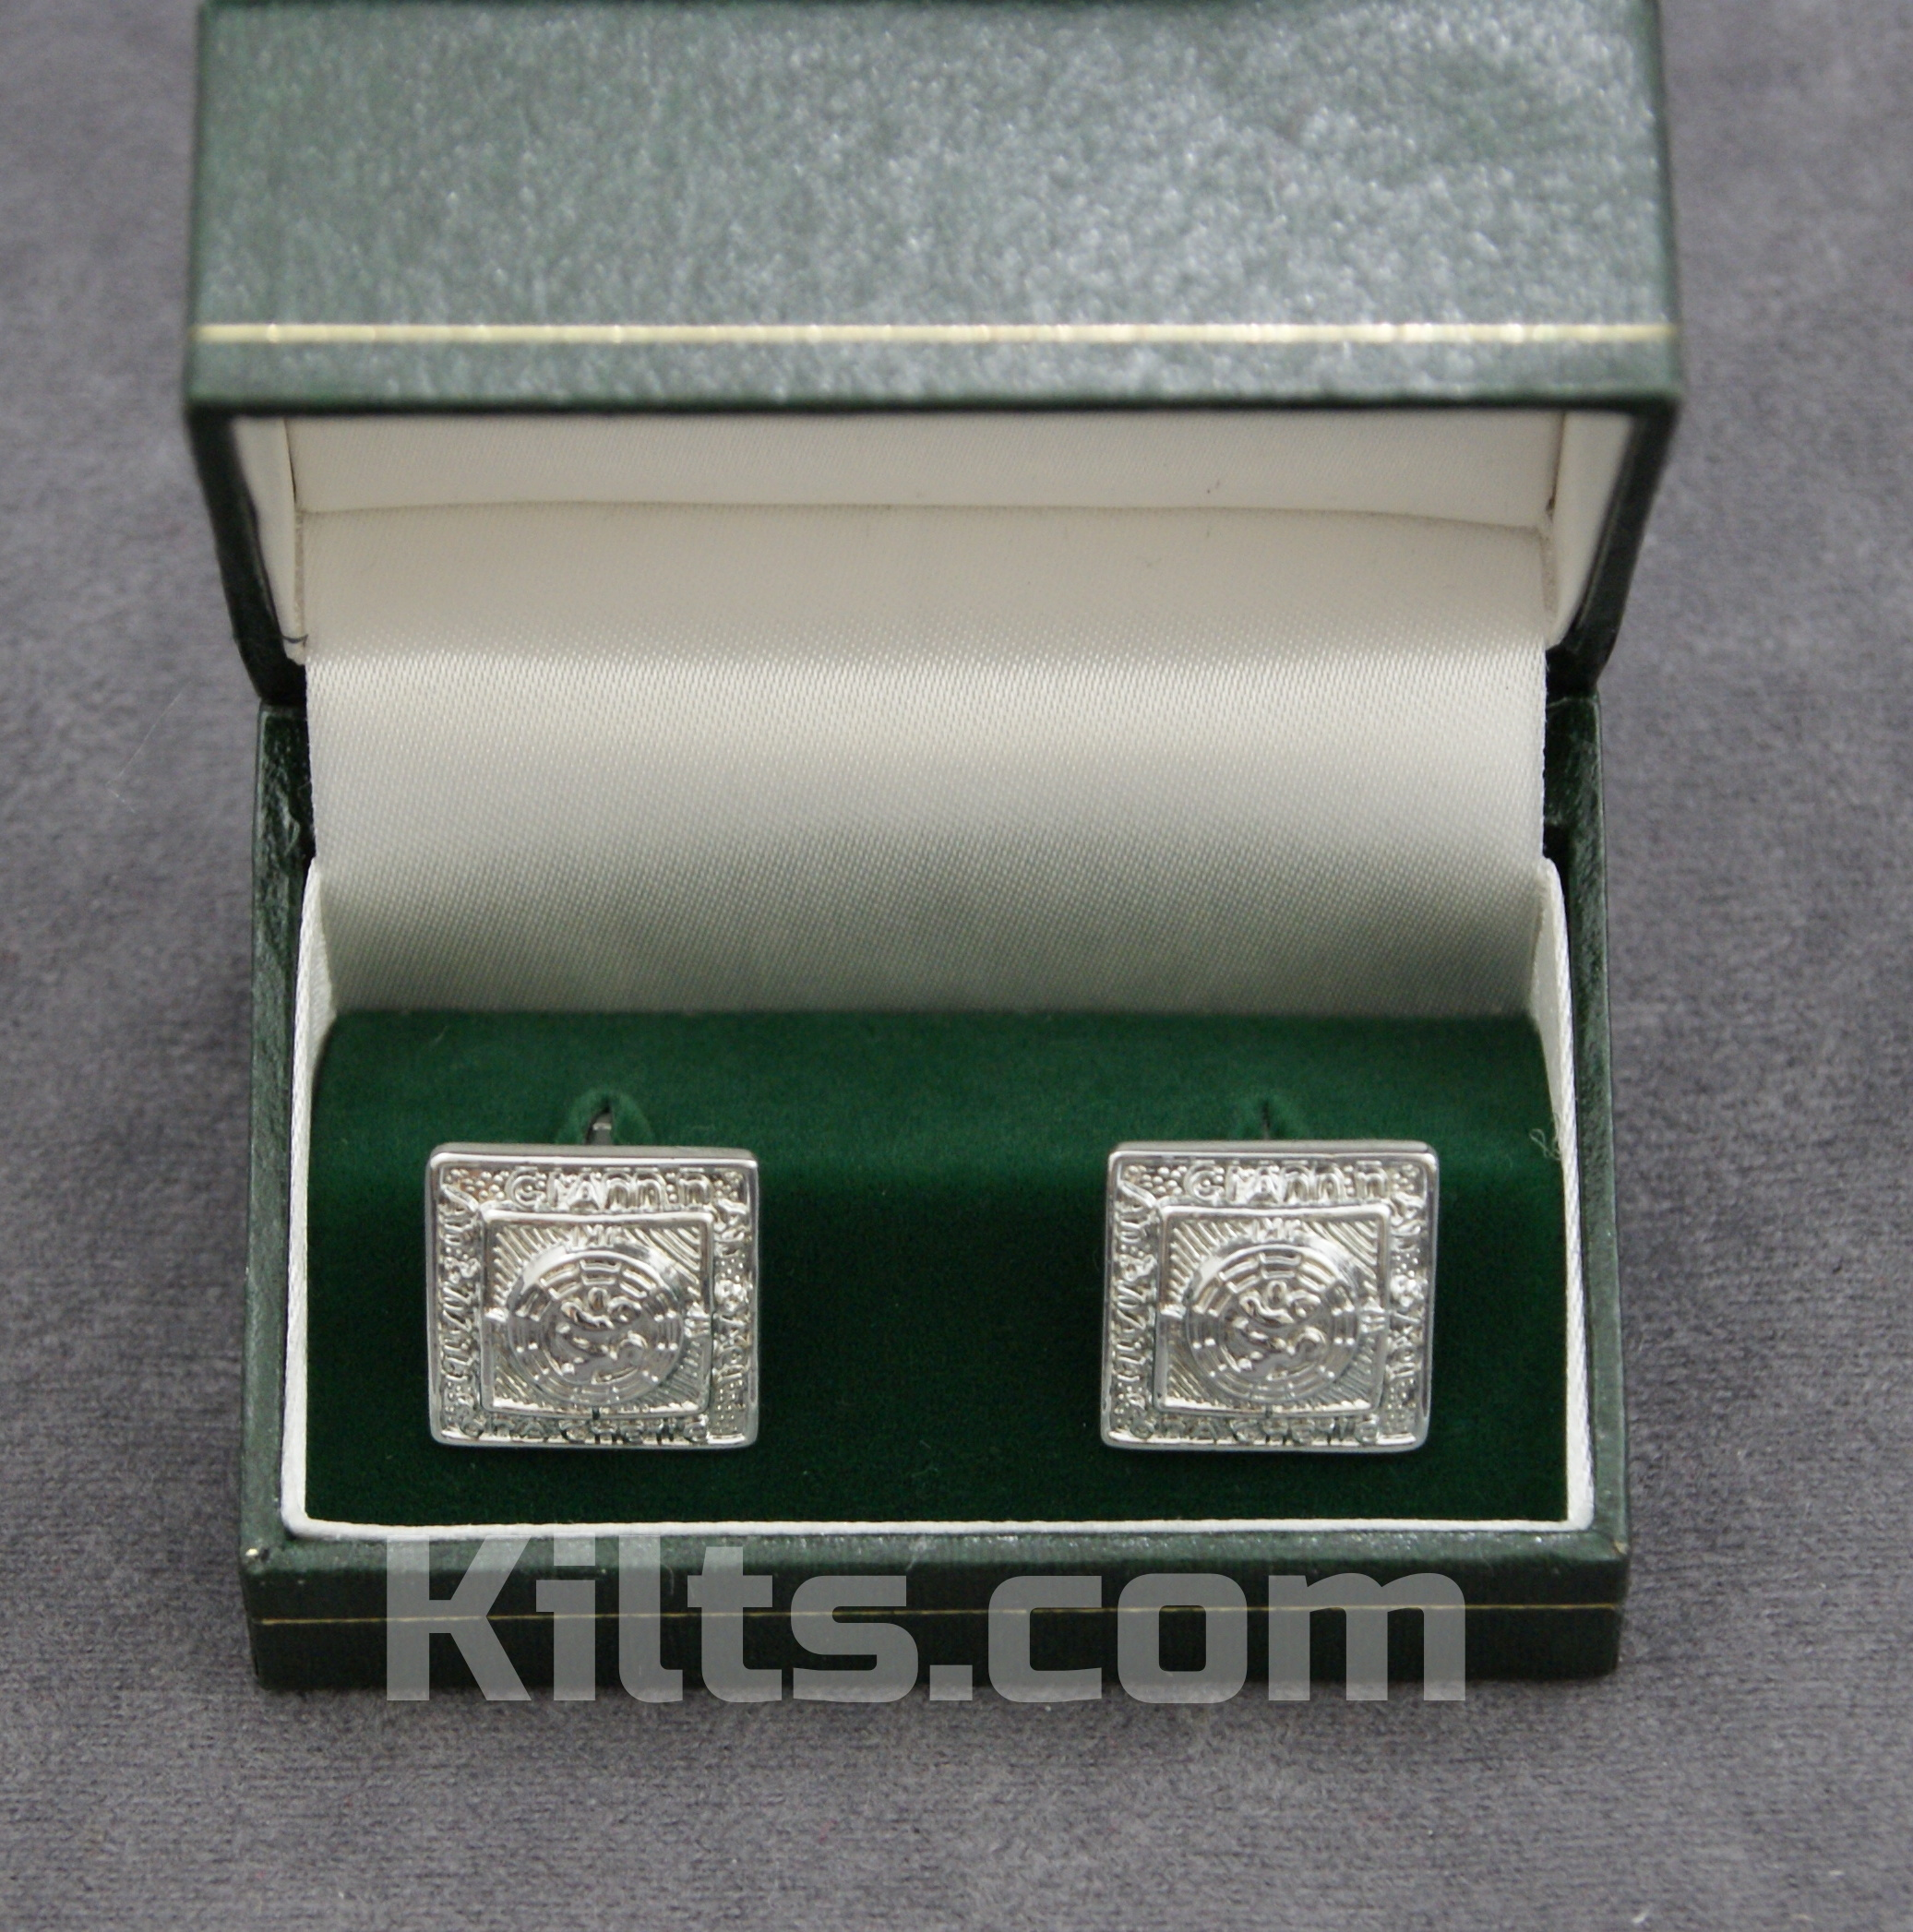 Have a look at our formal button cuff links for your kilt outfit.